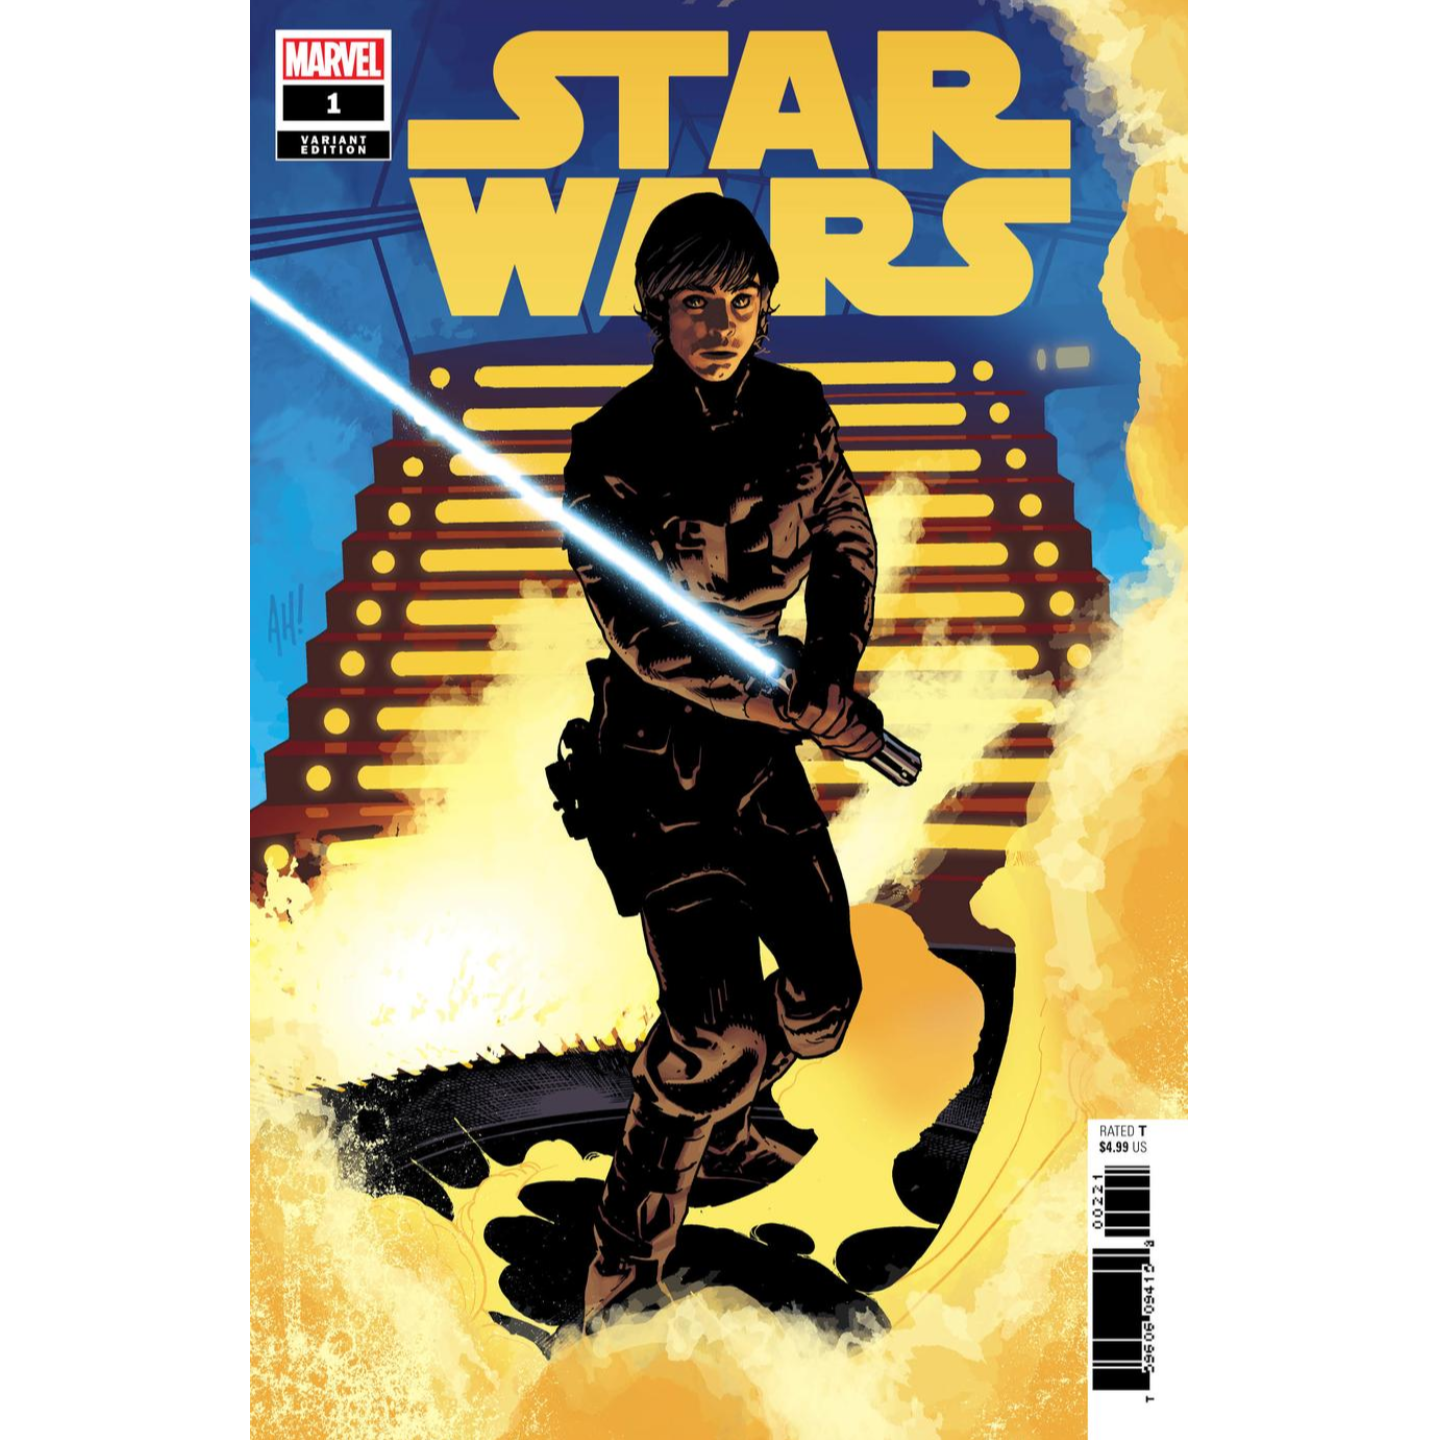 STAR WARS #1 - ADAM HUGHES LUKE SKYWALKER VARIANT